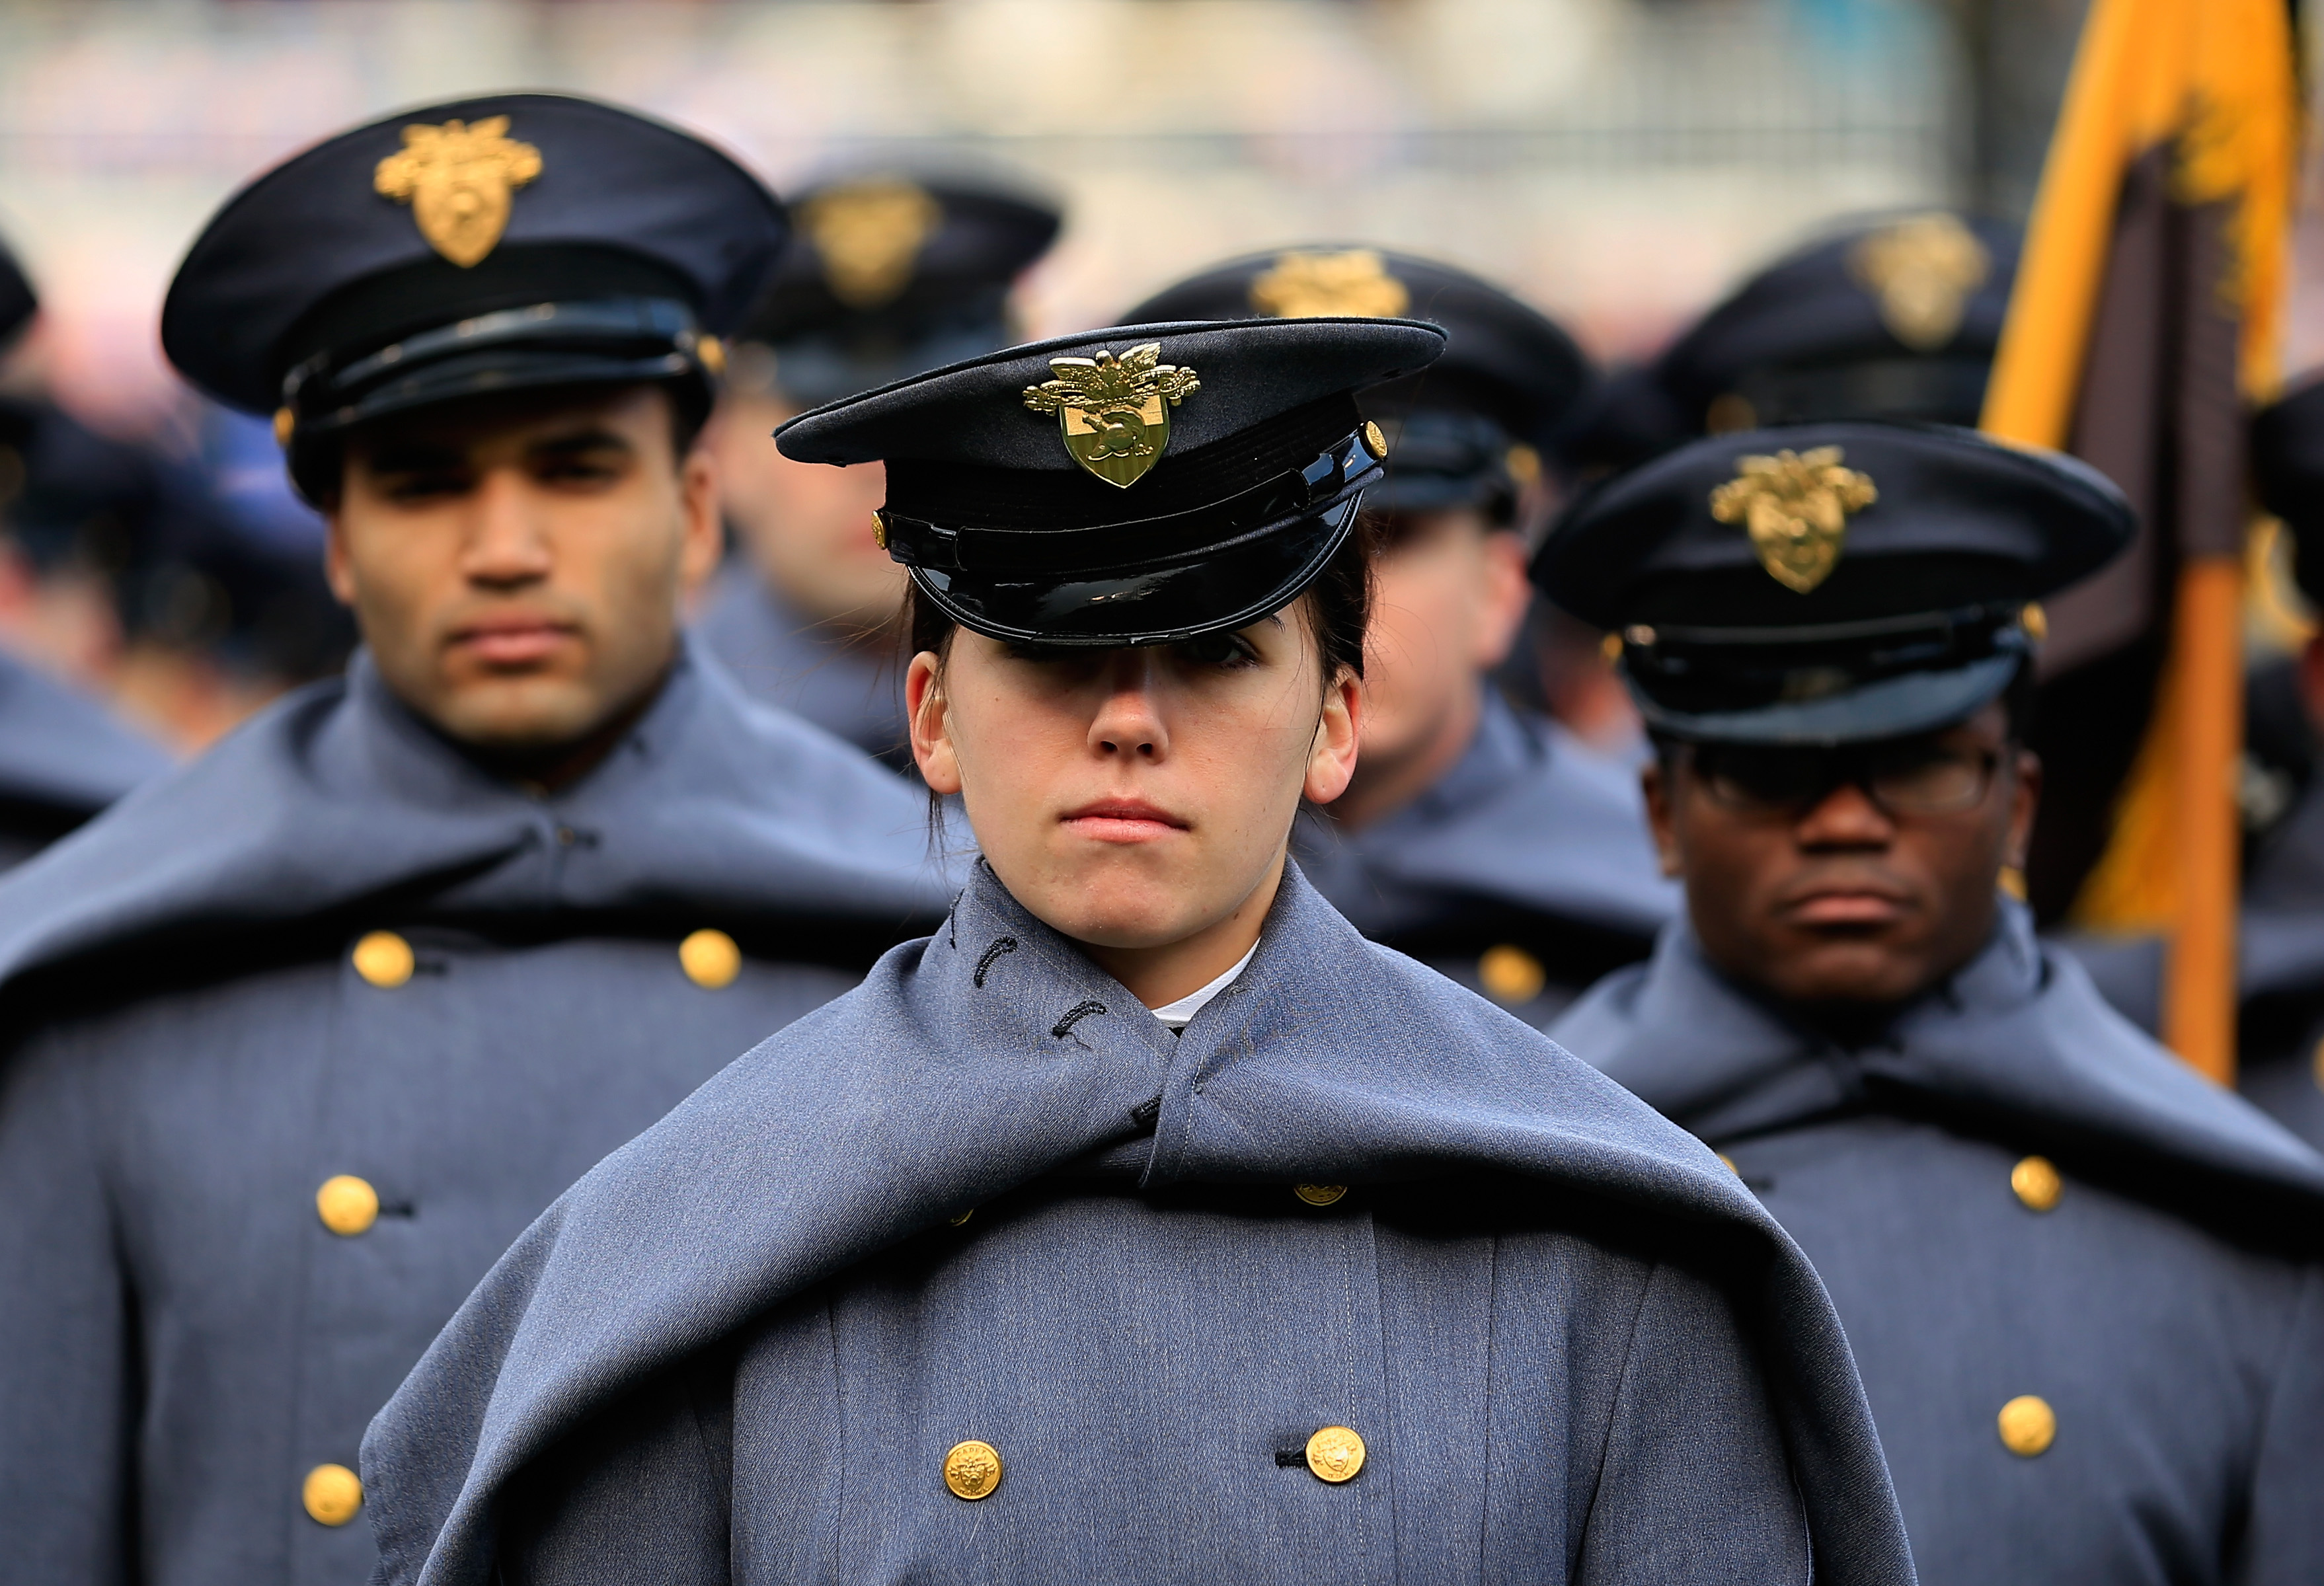 Cadets with the U.S. Military Academy at West Point